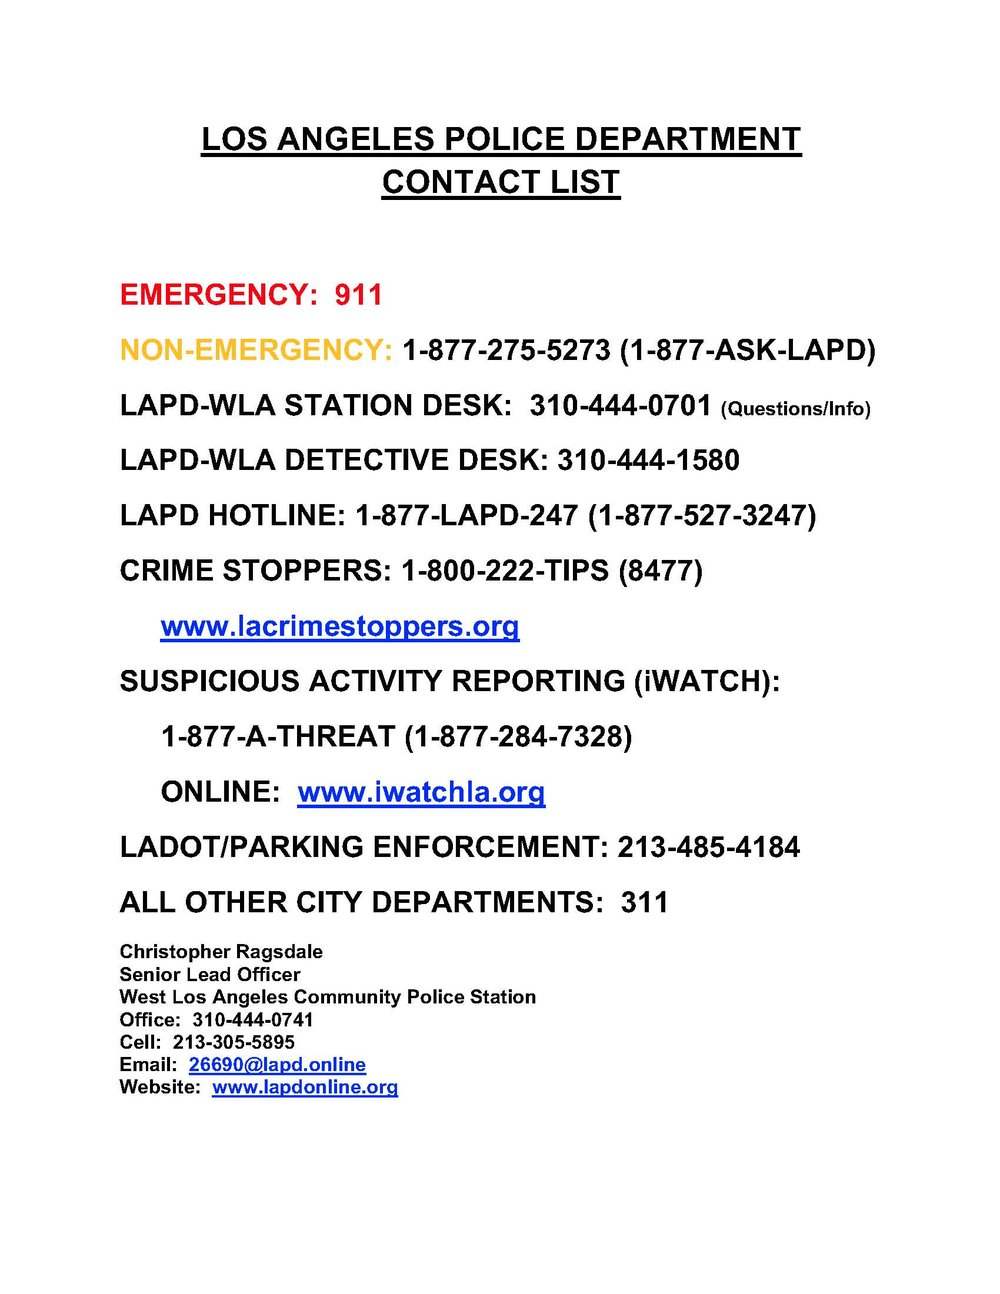 LOS+ANGELES+POLICE+DEPARTMENT+CONTACT+LIST+copy.jpg